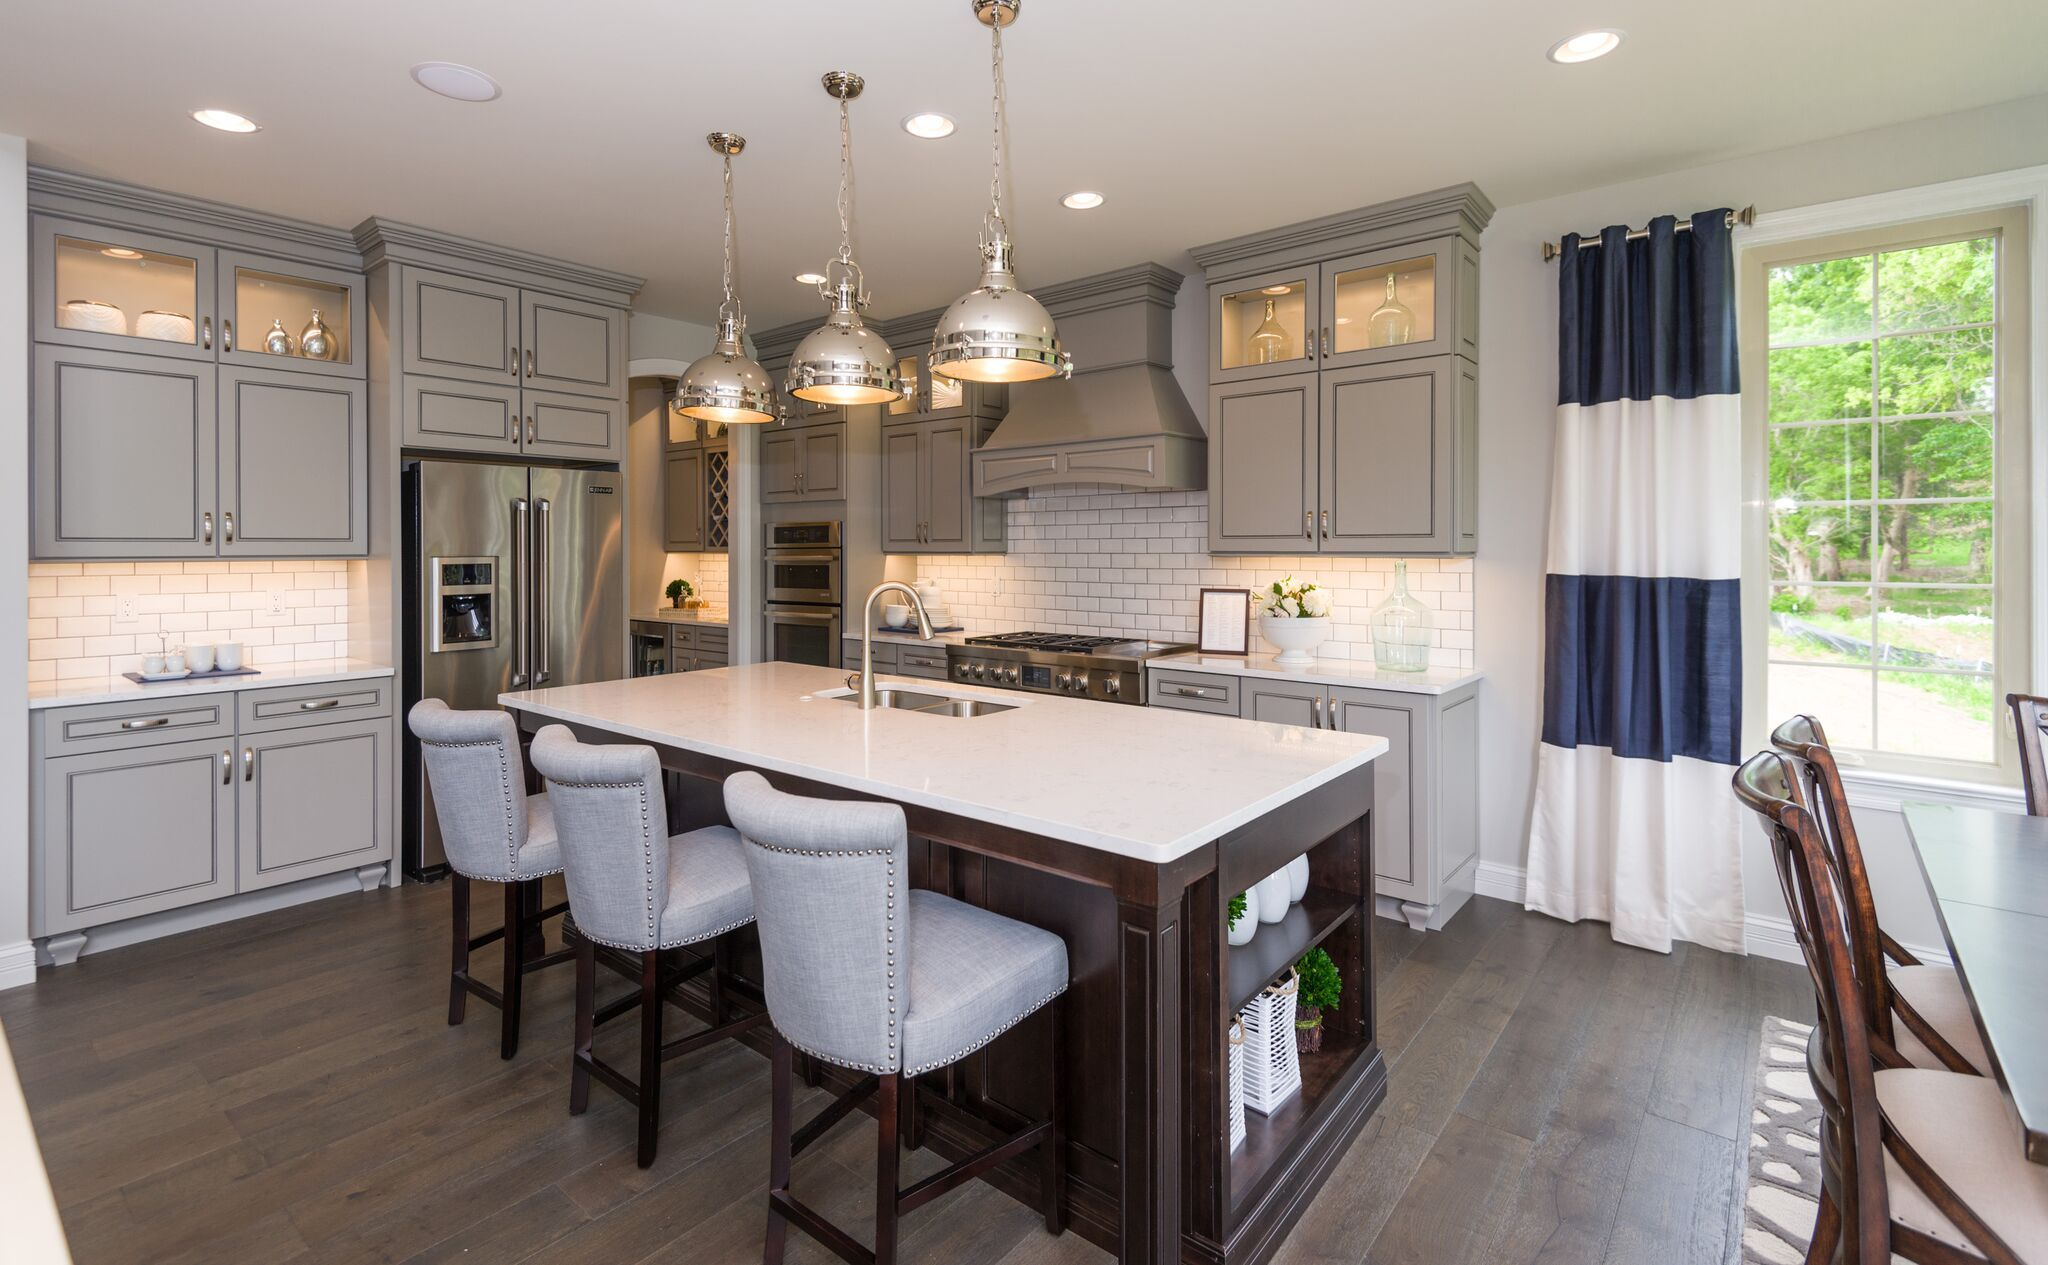 5 kitchen design trends to take from model homes diy kitchen remodel latest kitchen trends on kitchen decor trends id=79928